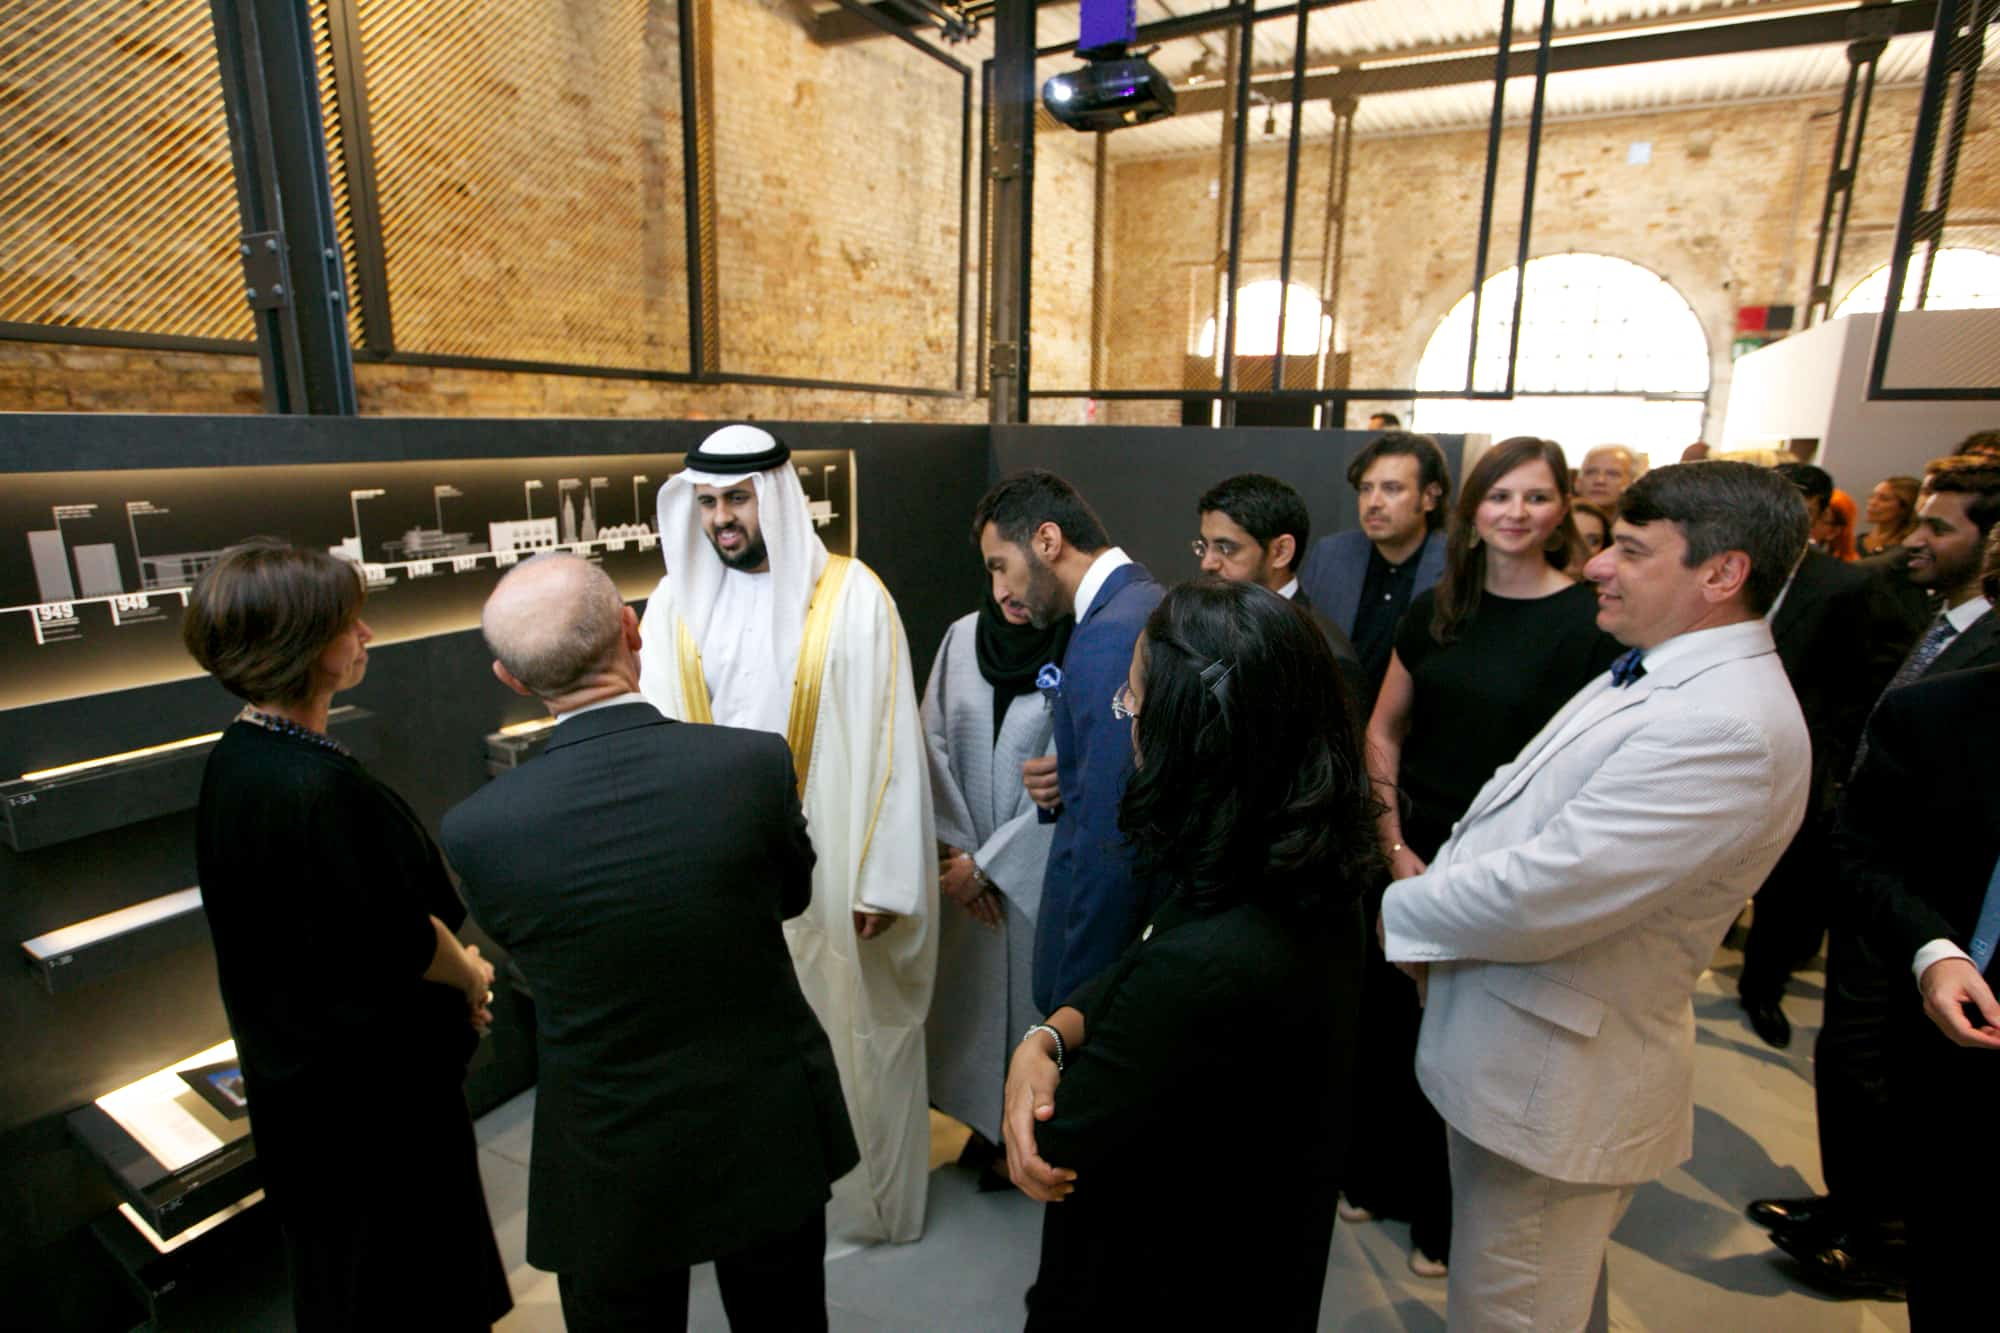 Sheikh Theyab bin Mohammed Al Nahyan, trustee of the Salama bint Hamdan Al Nahyan Foundation tours the National Pavilion UAE at la Biennale di Venezia.